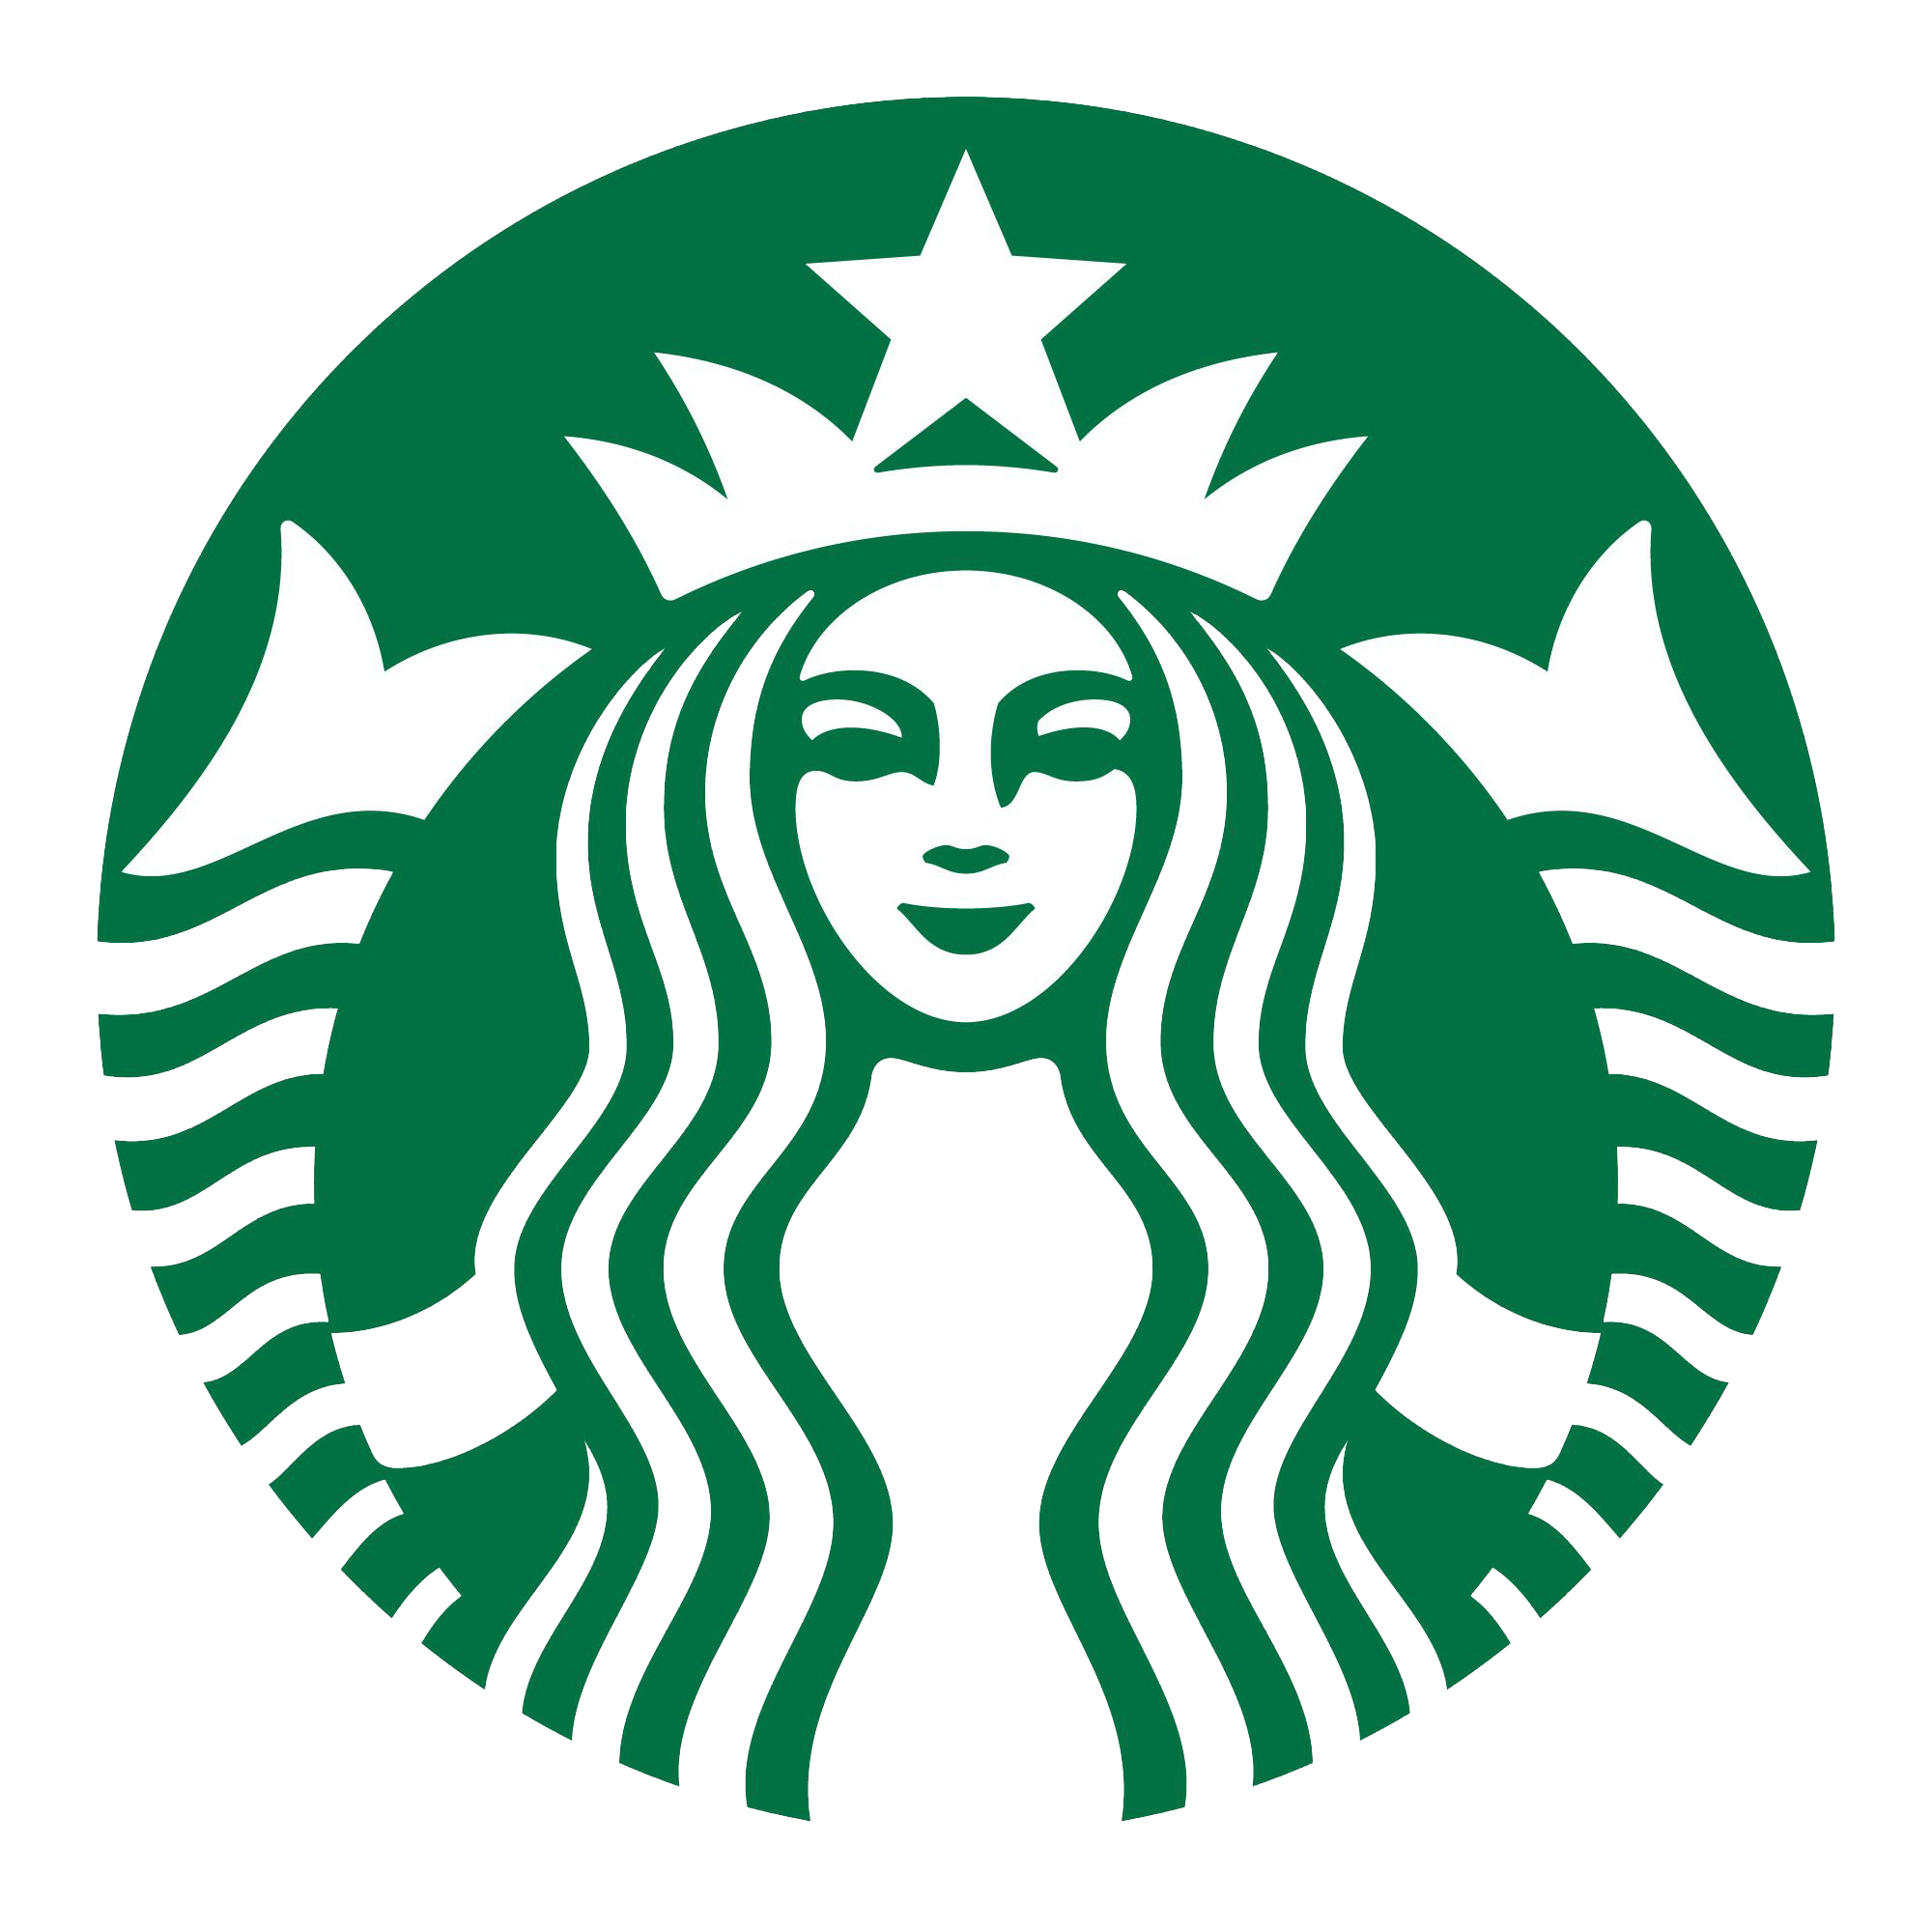 星巴克咖啡 STARBUCKS COFFEE